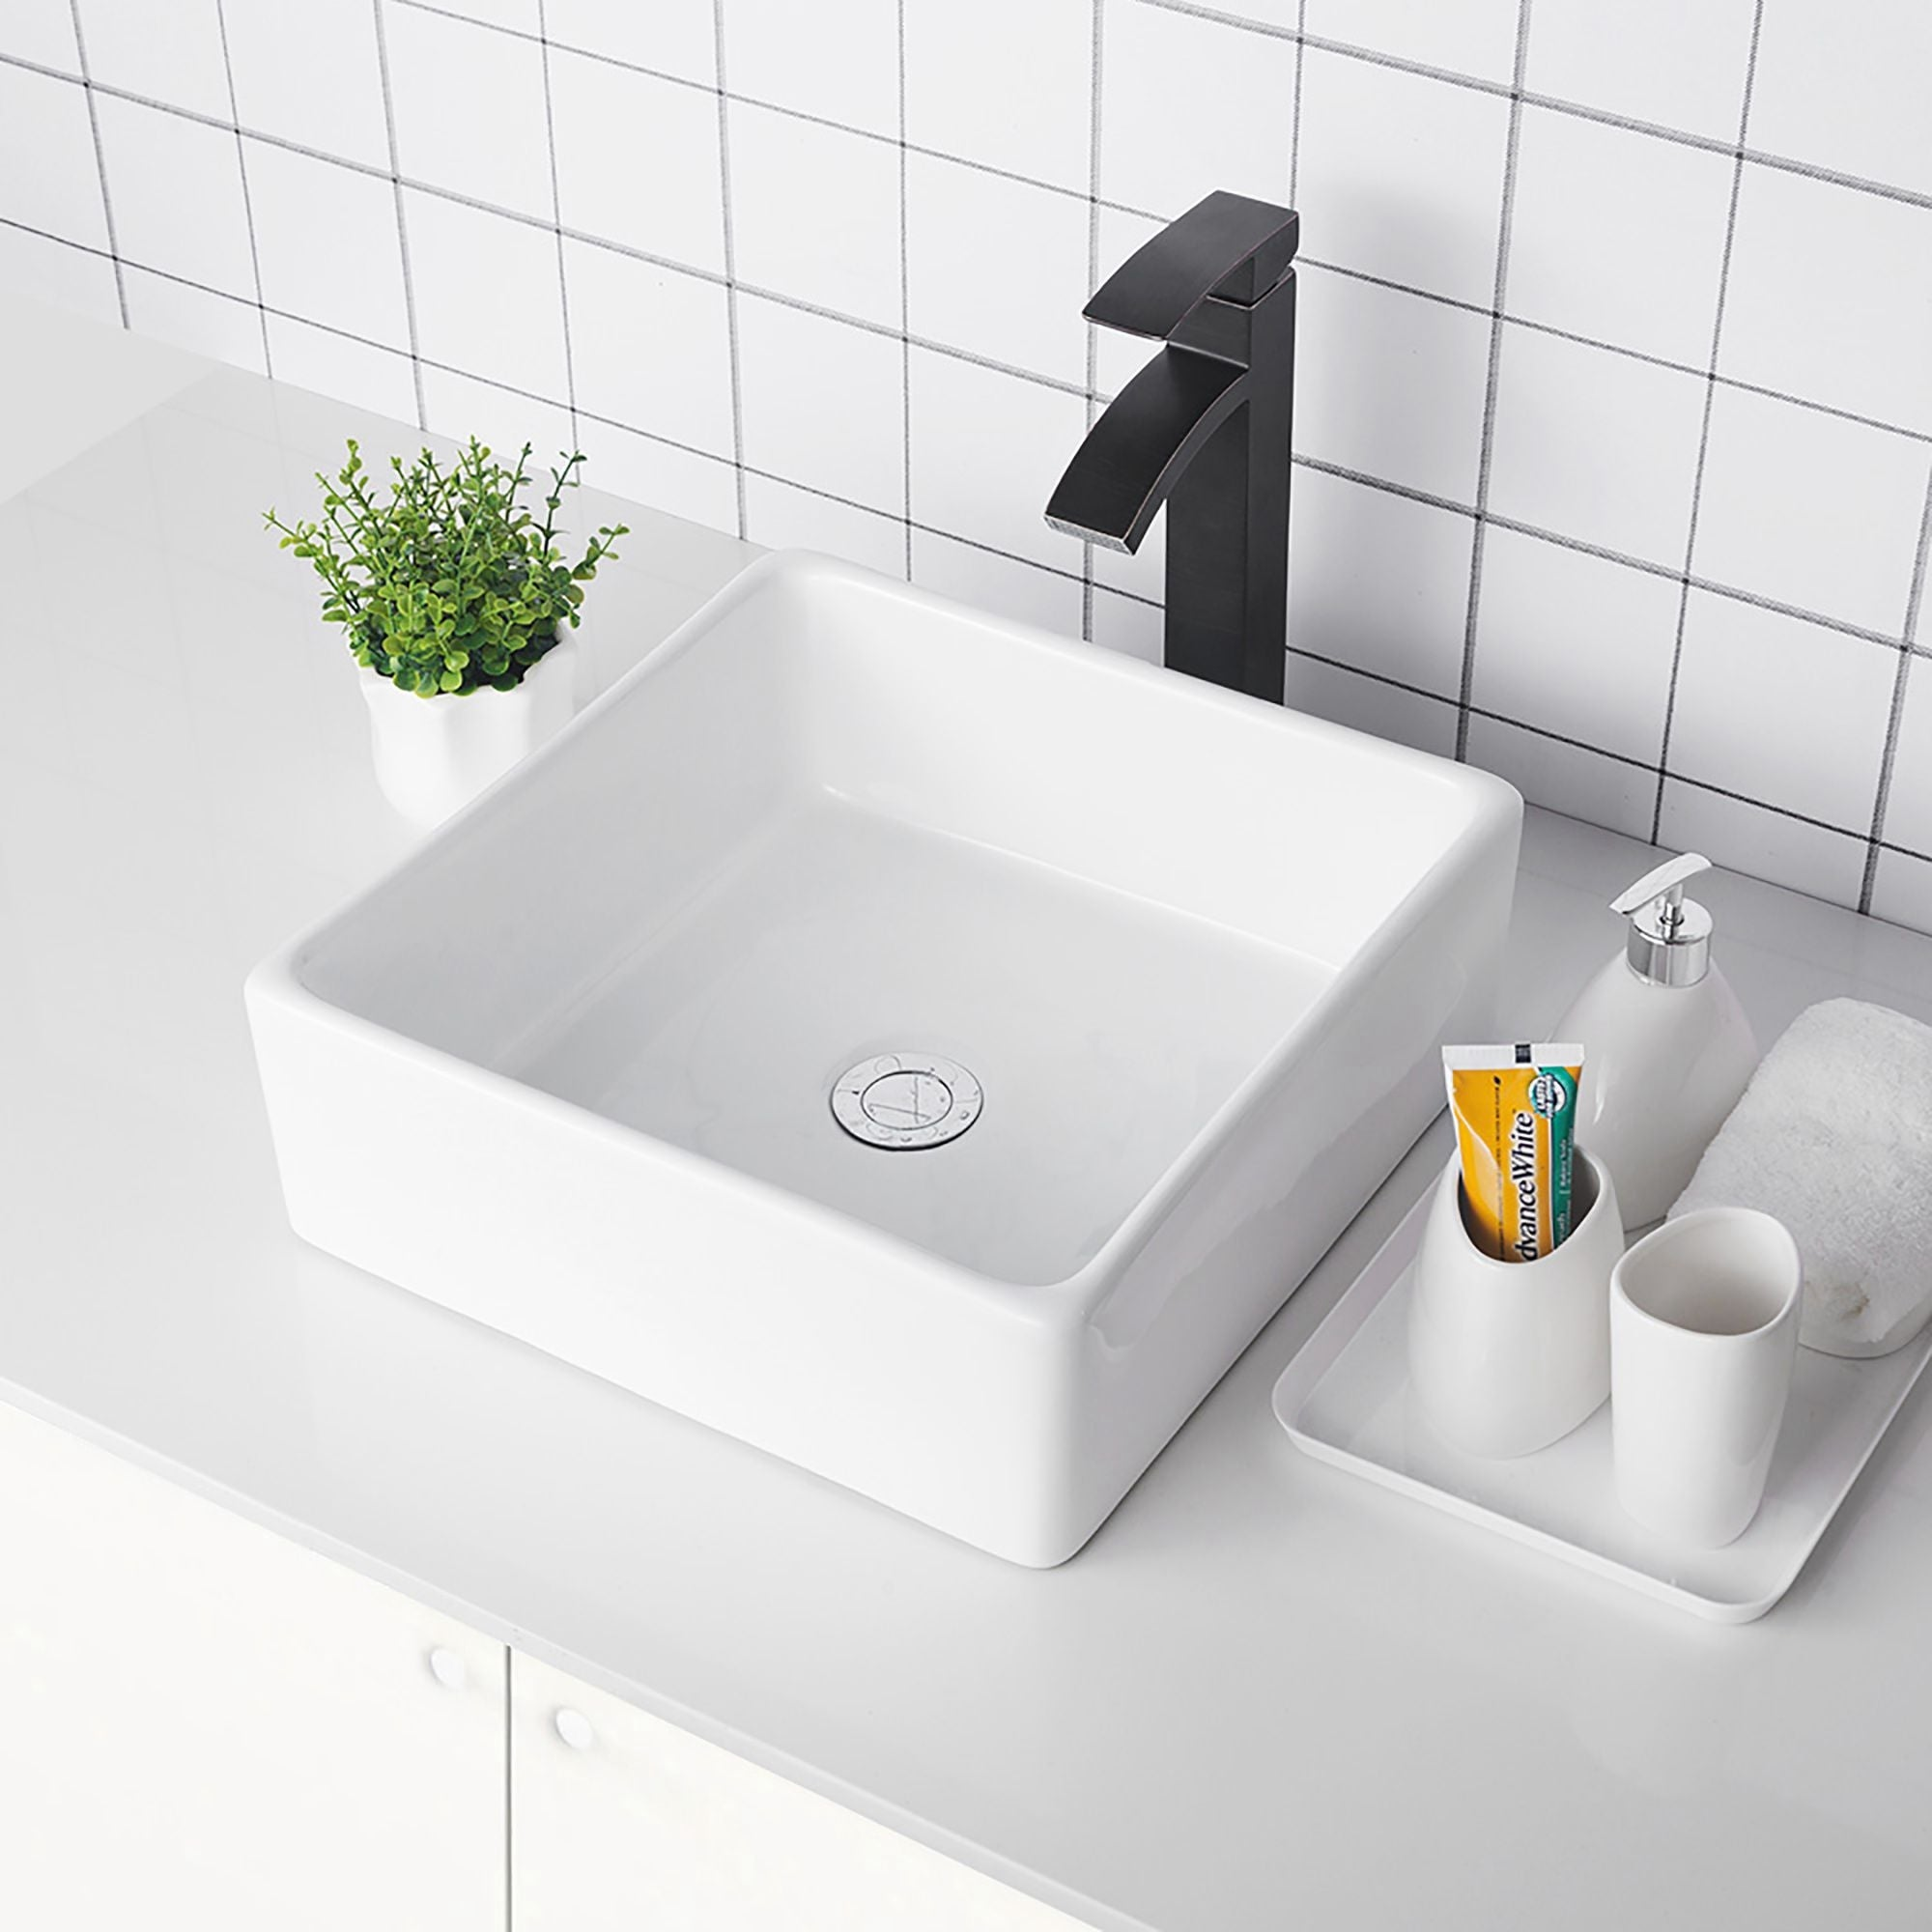 Shop For White Ceramic Handmade Square Vessel Bathroom Sink Get Free Shipping On Everything At Overstock Your Online Home Improvement Outlet Store Get 5 In Rewards With Club O 31633676